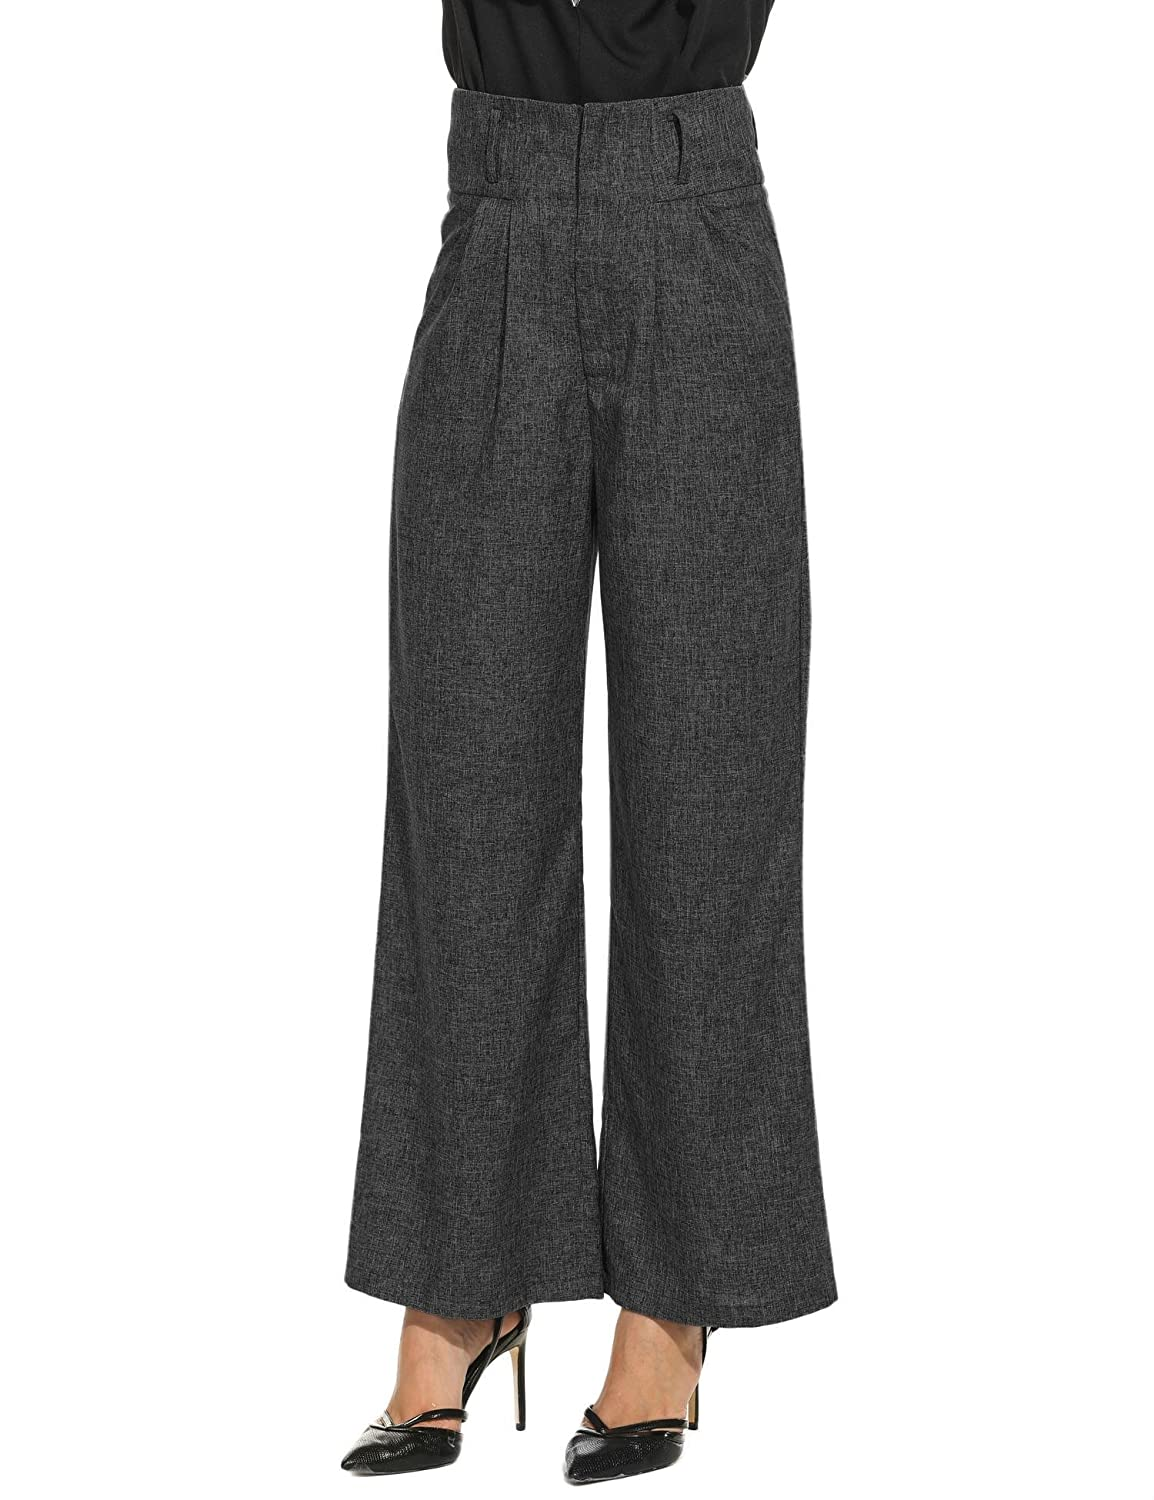 1920s Skirts, Gatsby Skirts, Vintage Pleated Skirts Zeagoo Womens Casual Superline Wide Flare Leg High Waist Zipper Solid Long Pants $27.99 AT vintagedancer.com